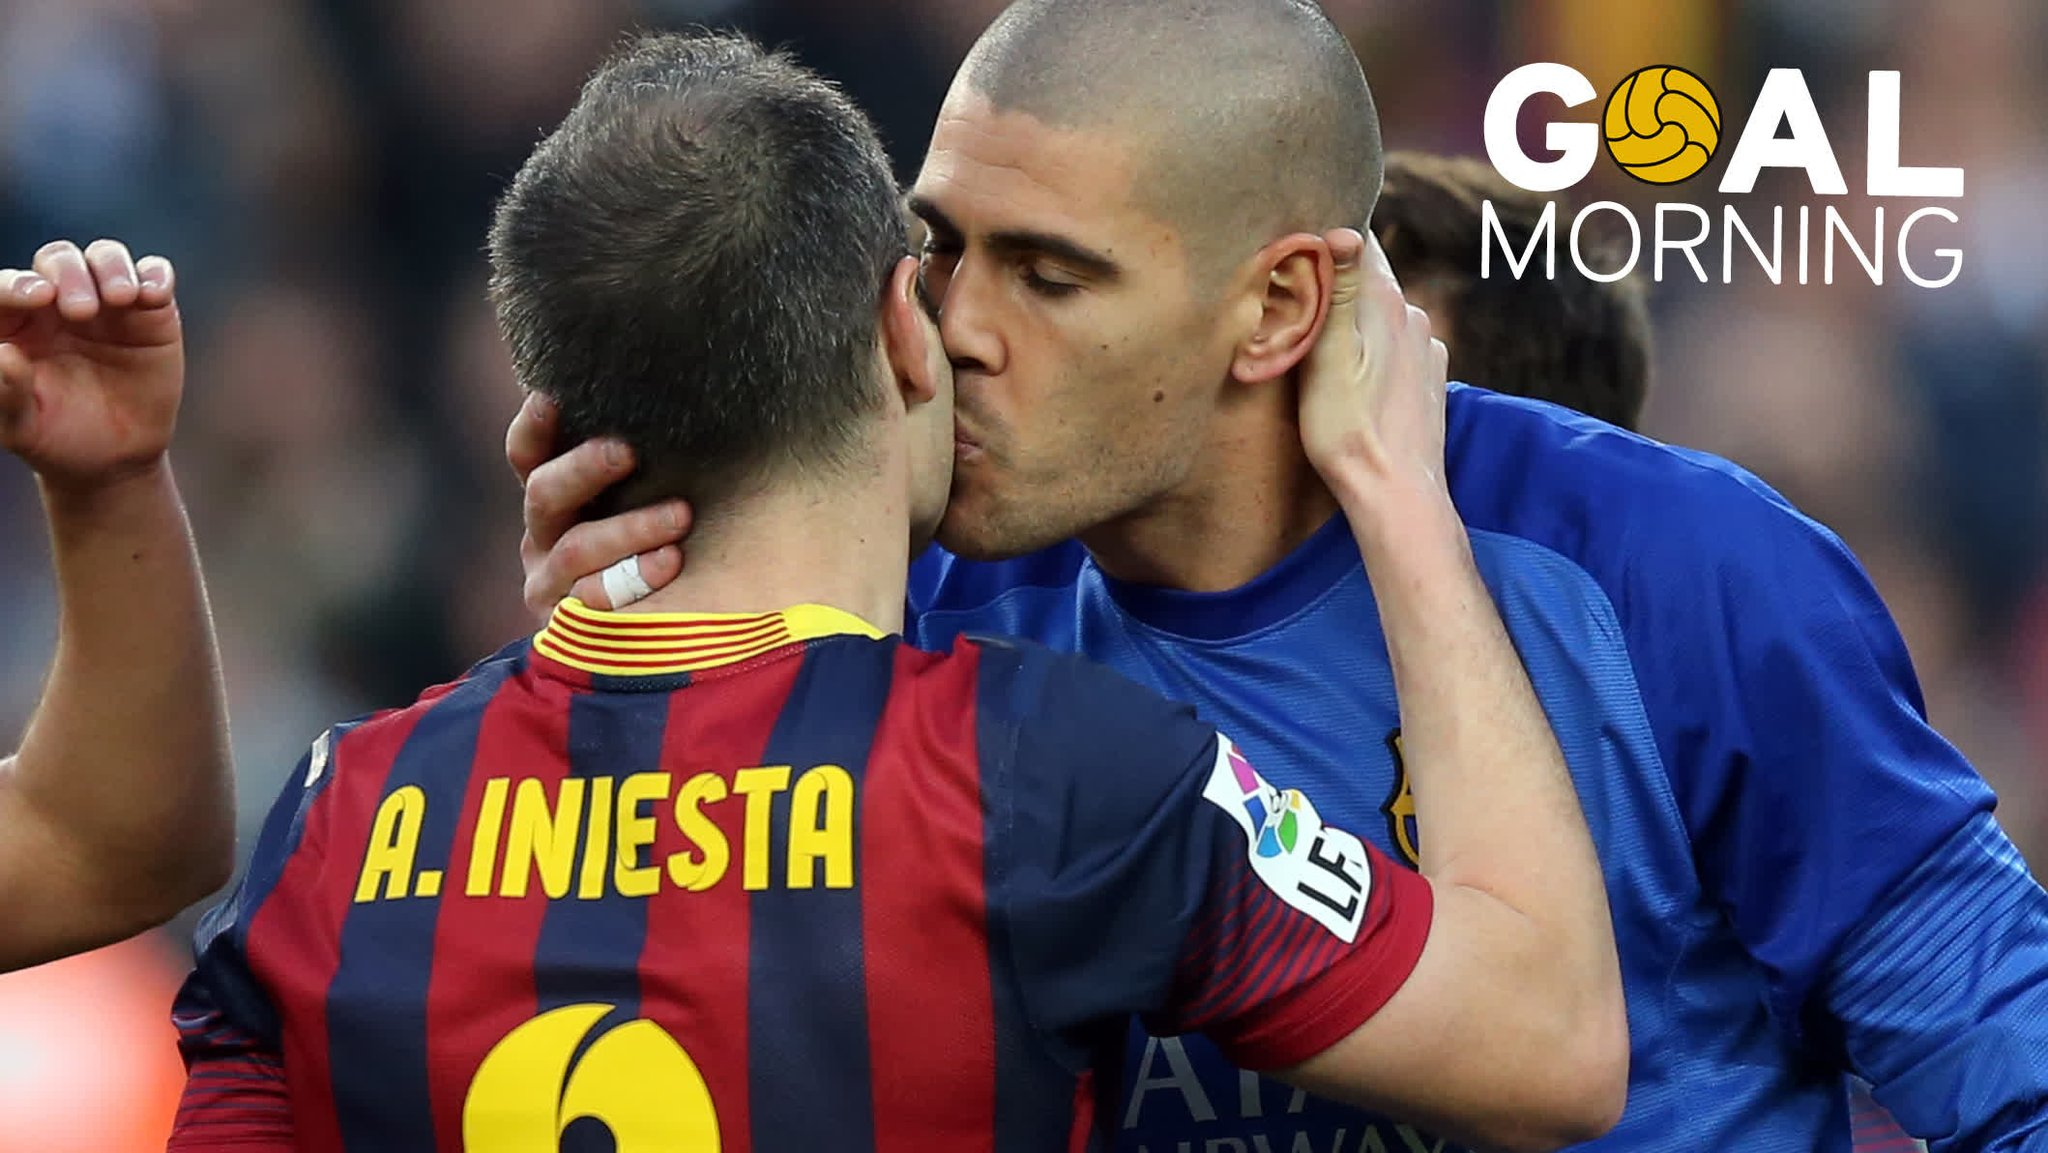 G⚽️AL MORNING!!! �� @andresiniesta8  �� �� Today is your day!!! https://t.co/07cslleo0Y